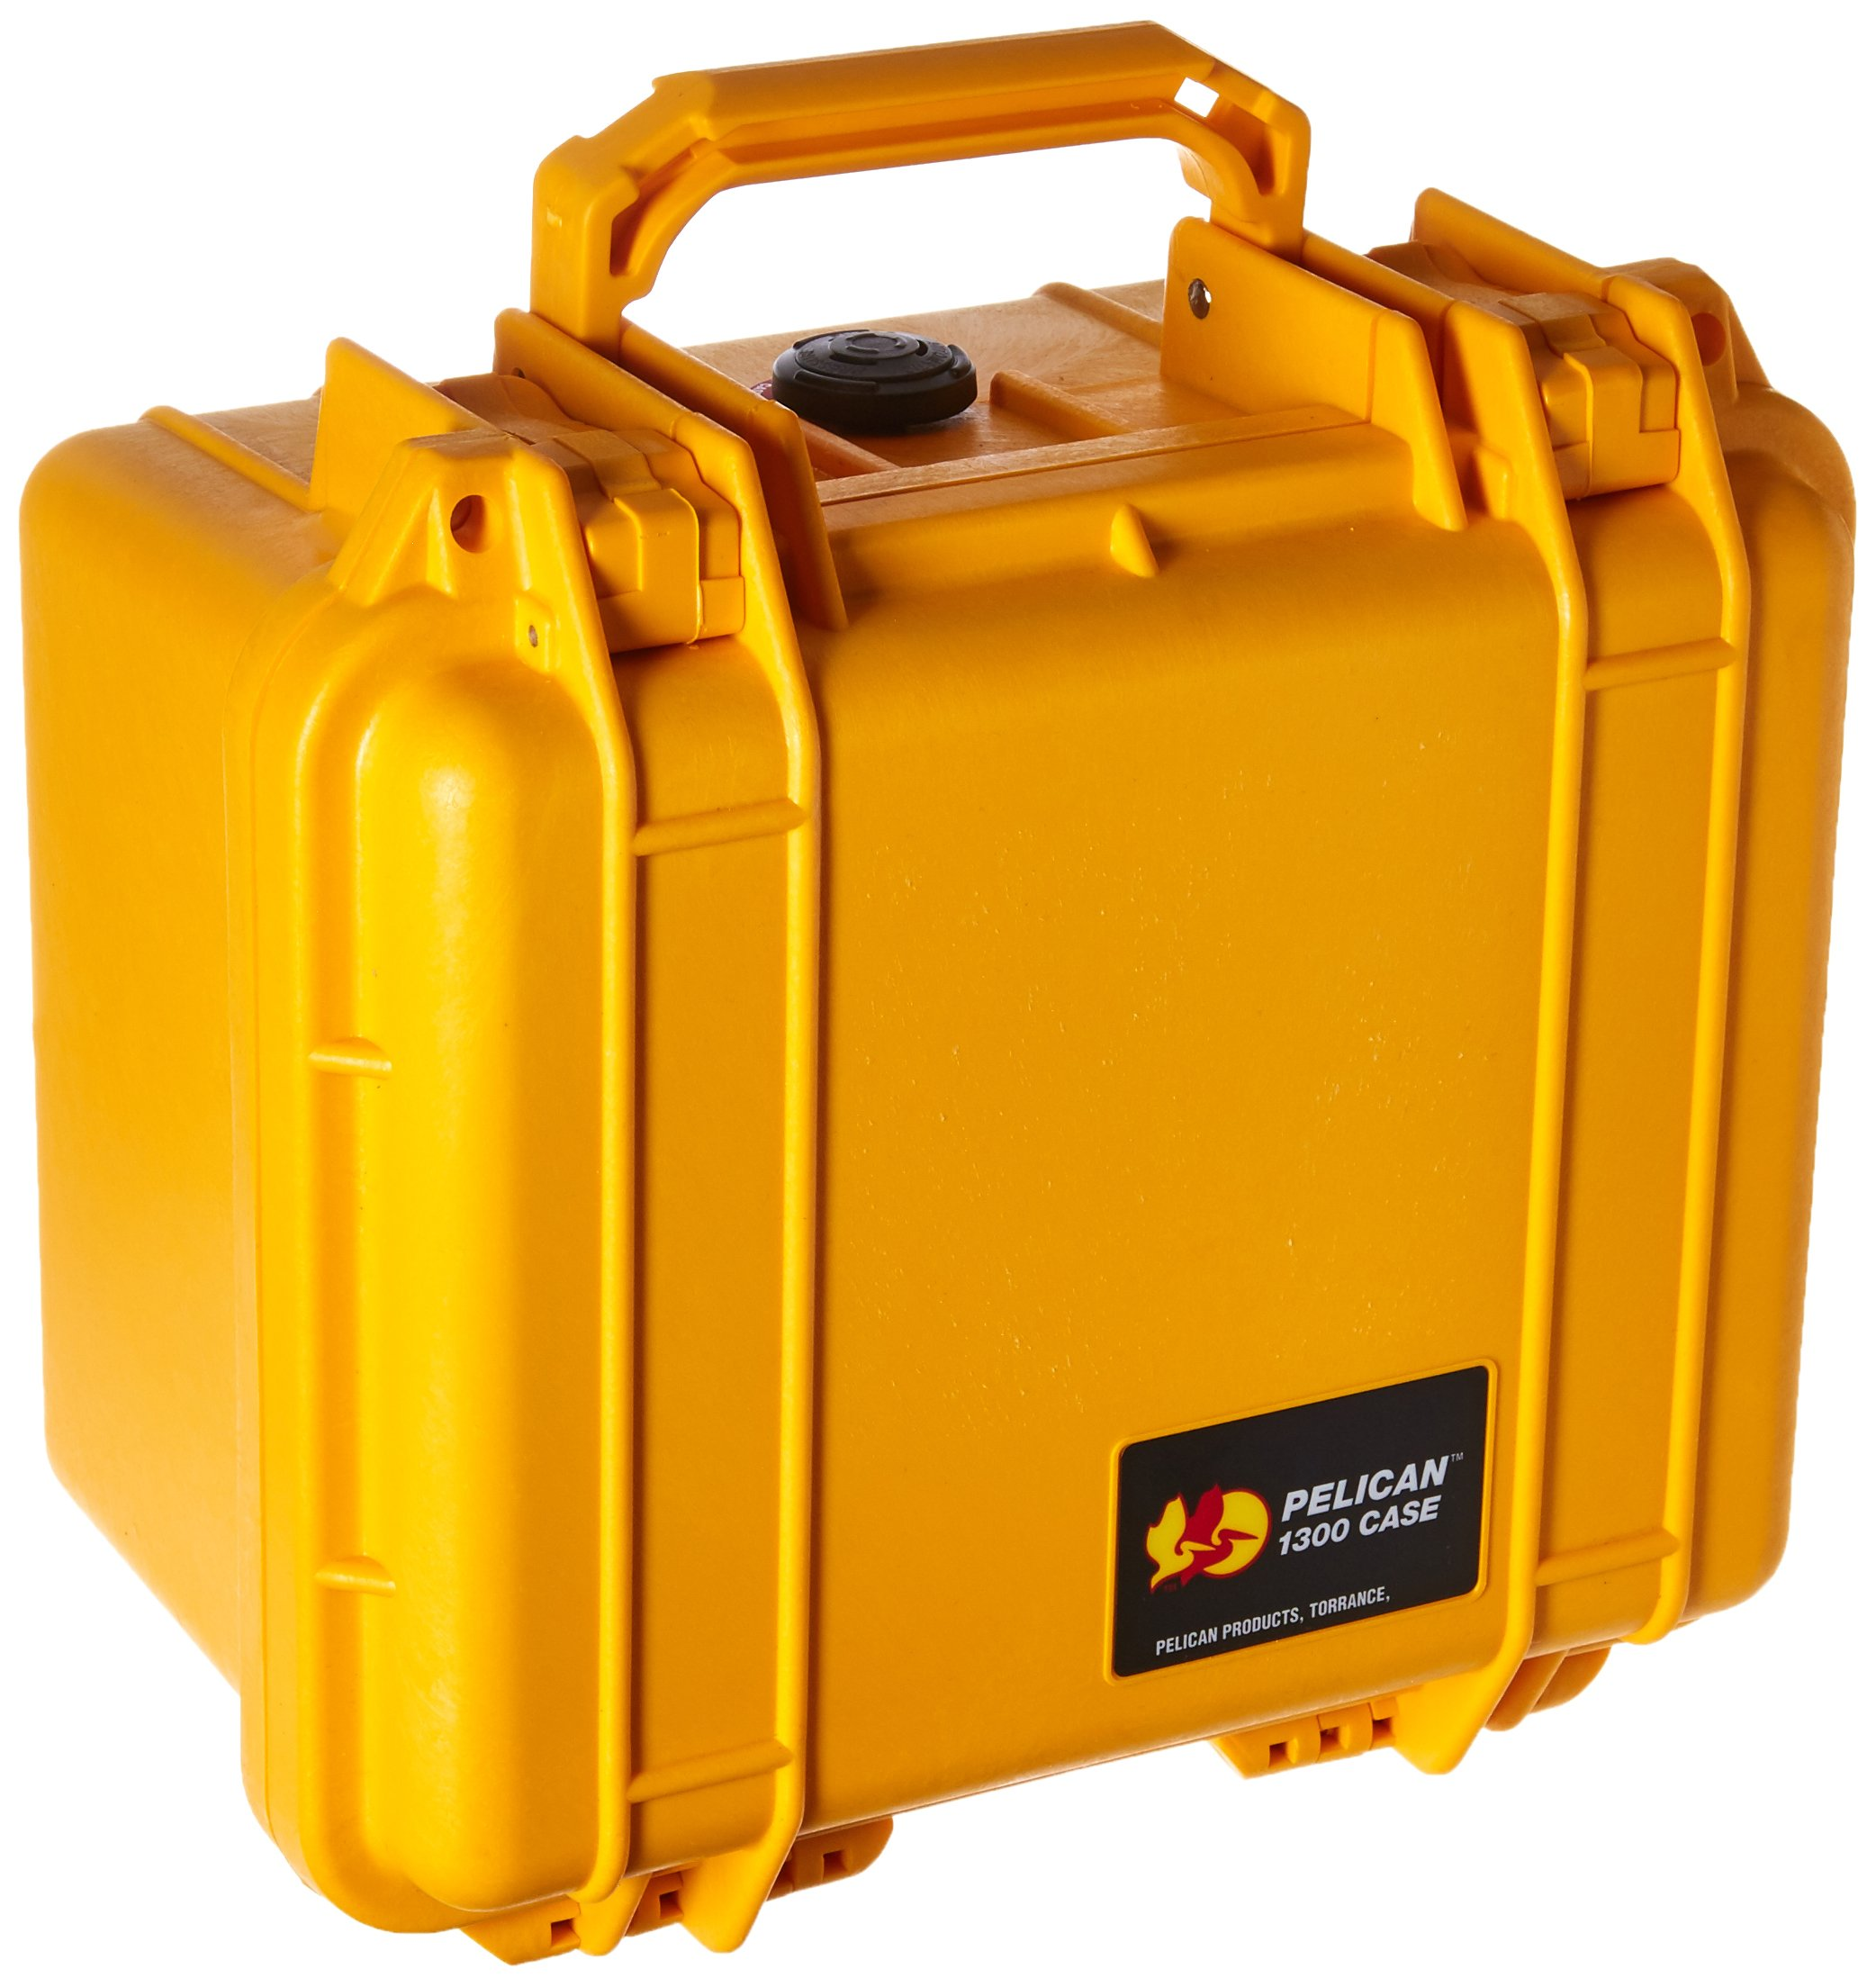 Pelican 1300 Camera Case With Foam (Yellow) by Pelican